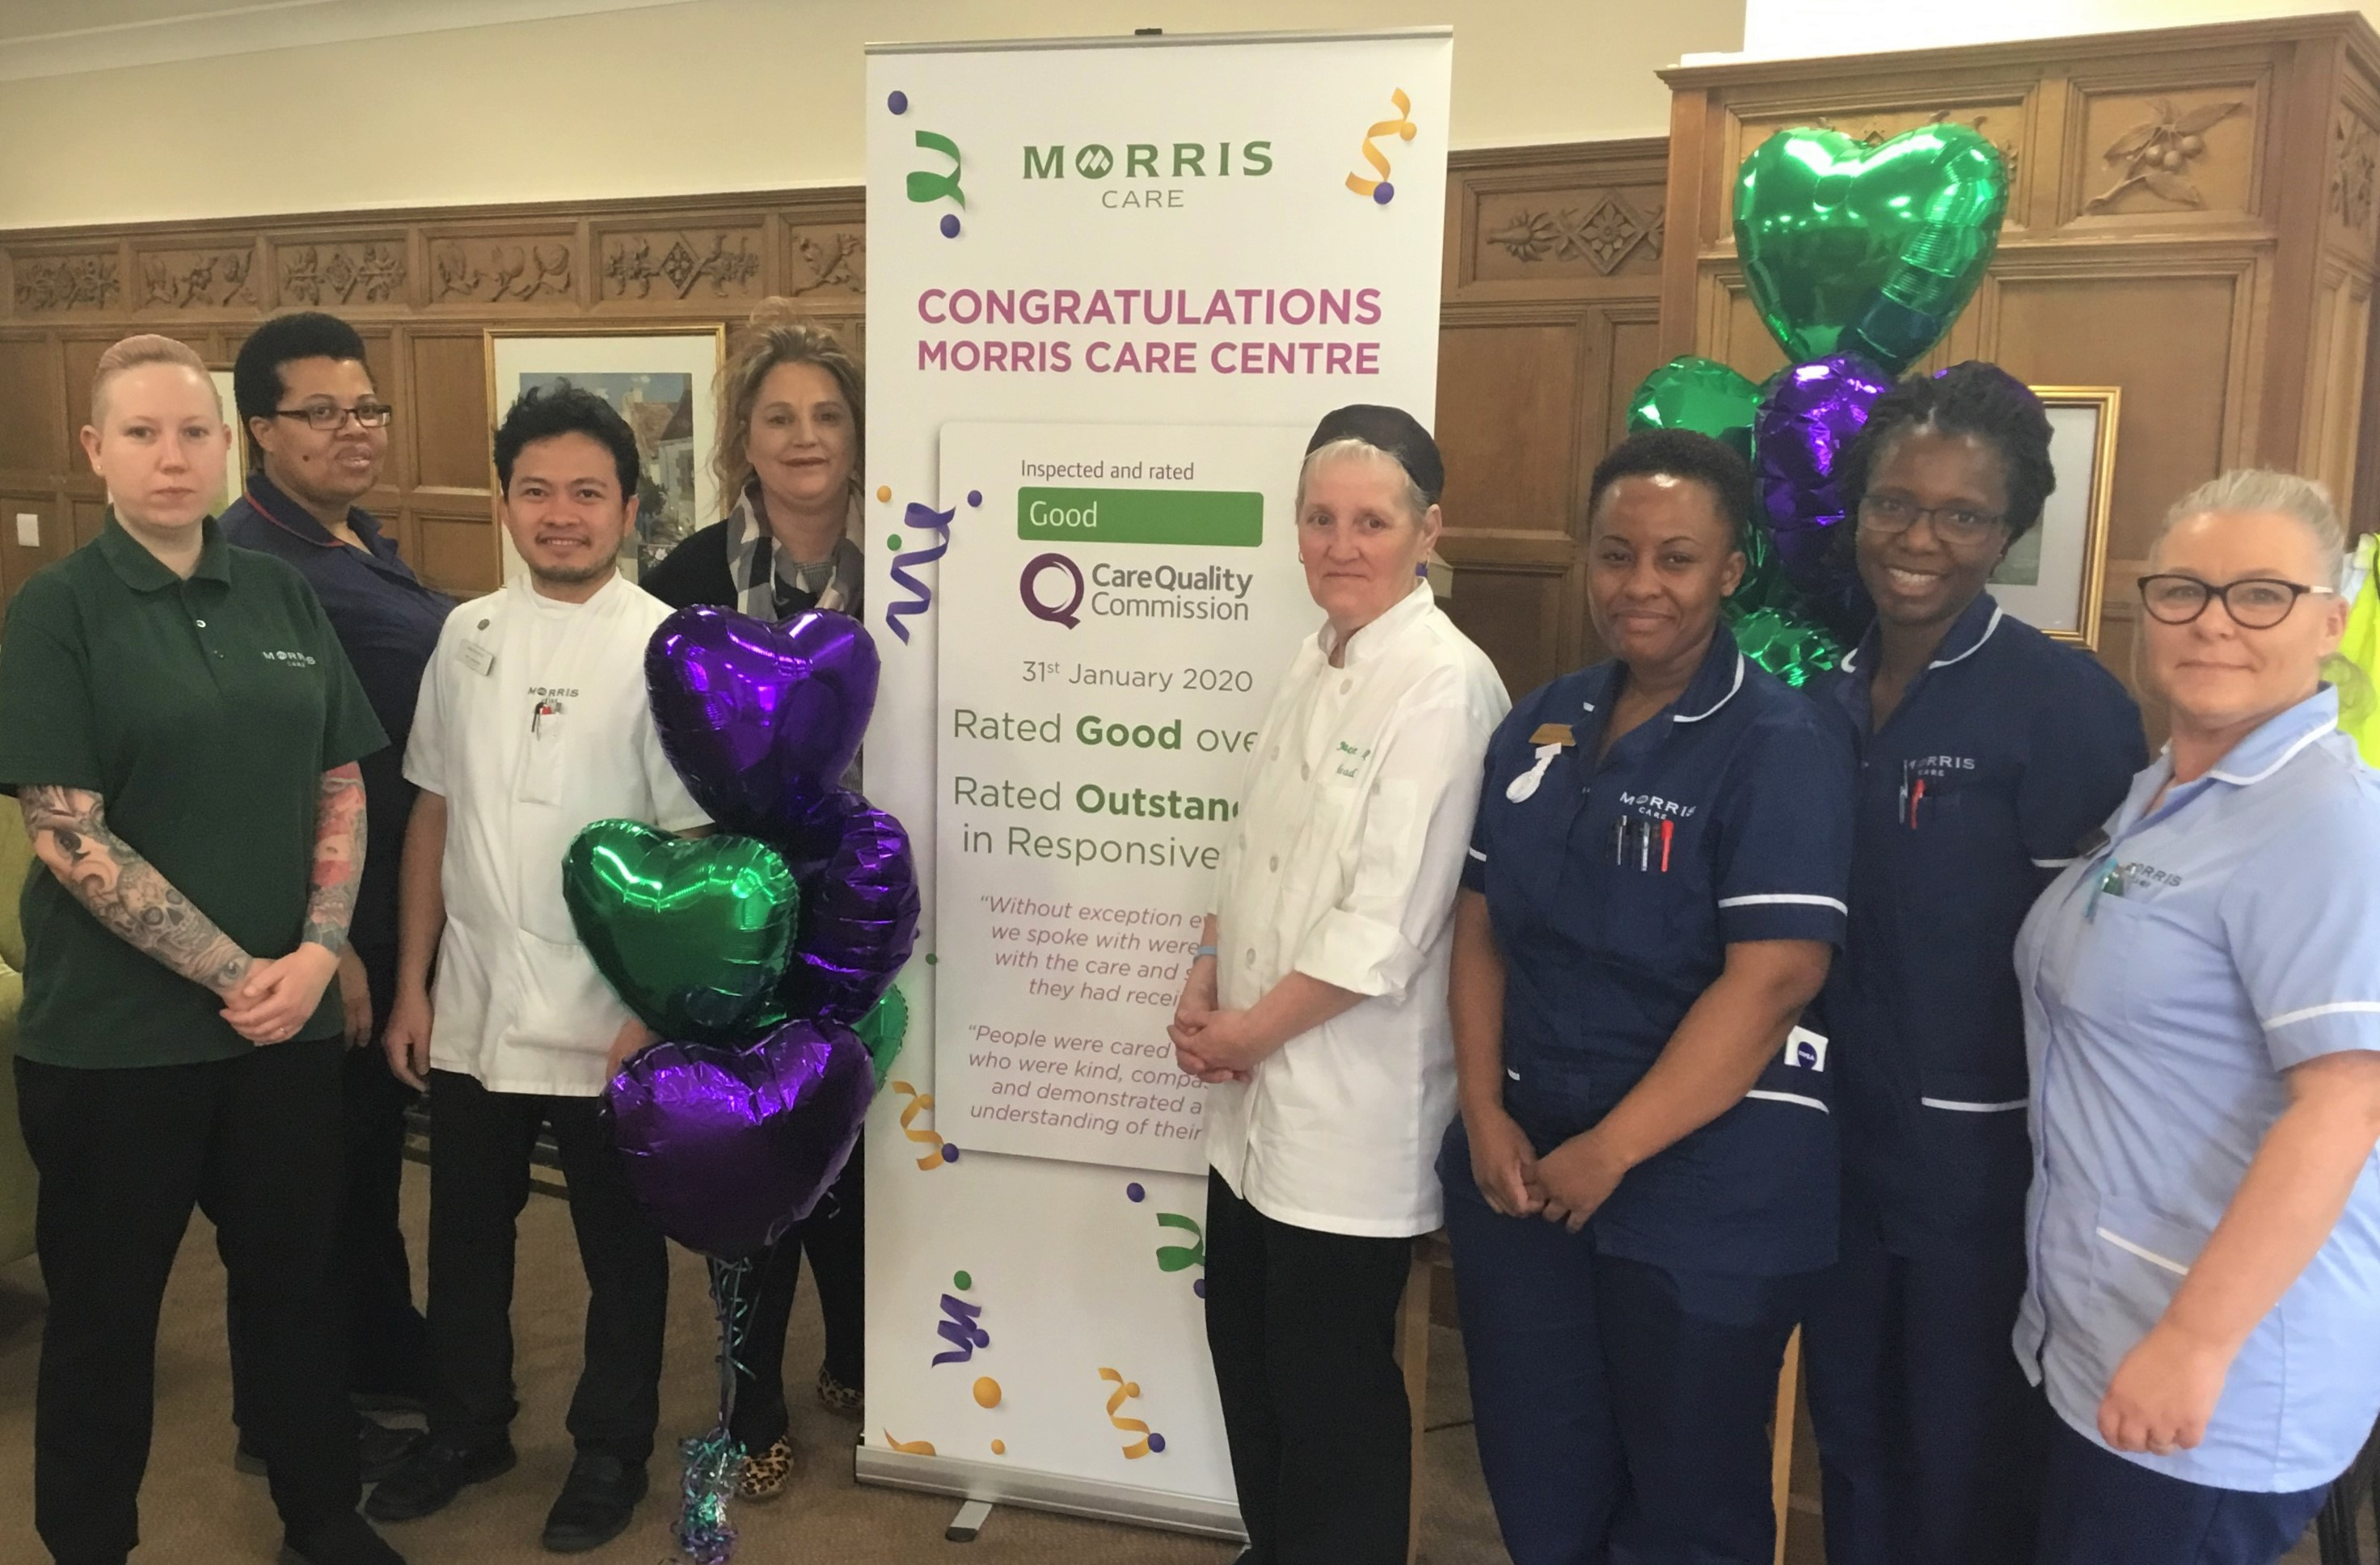 Shropshire care home commended by inspectors